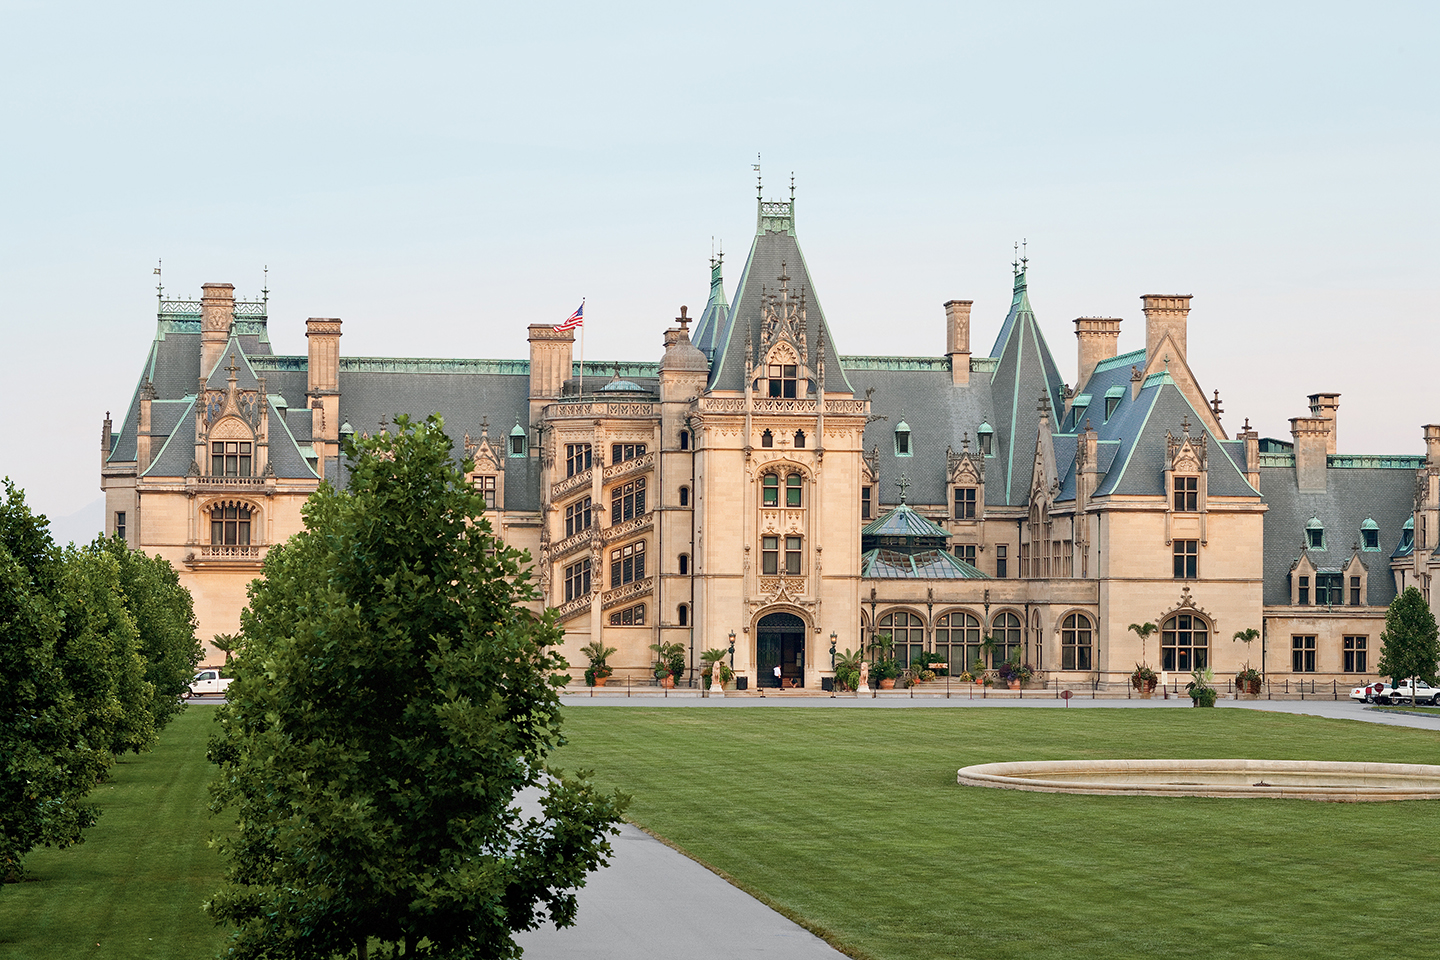 5. Tour the Biltmore Estate in North Carolina